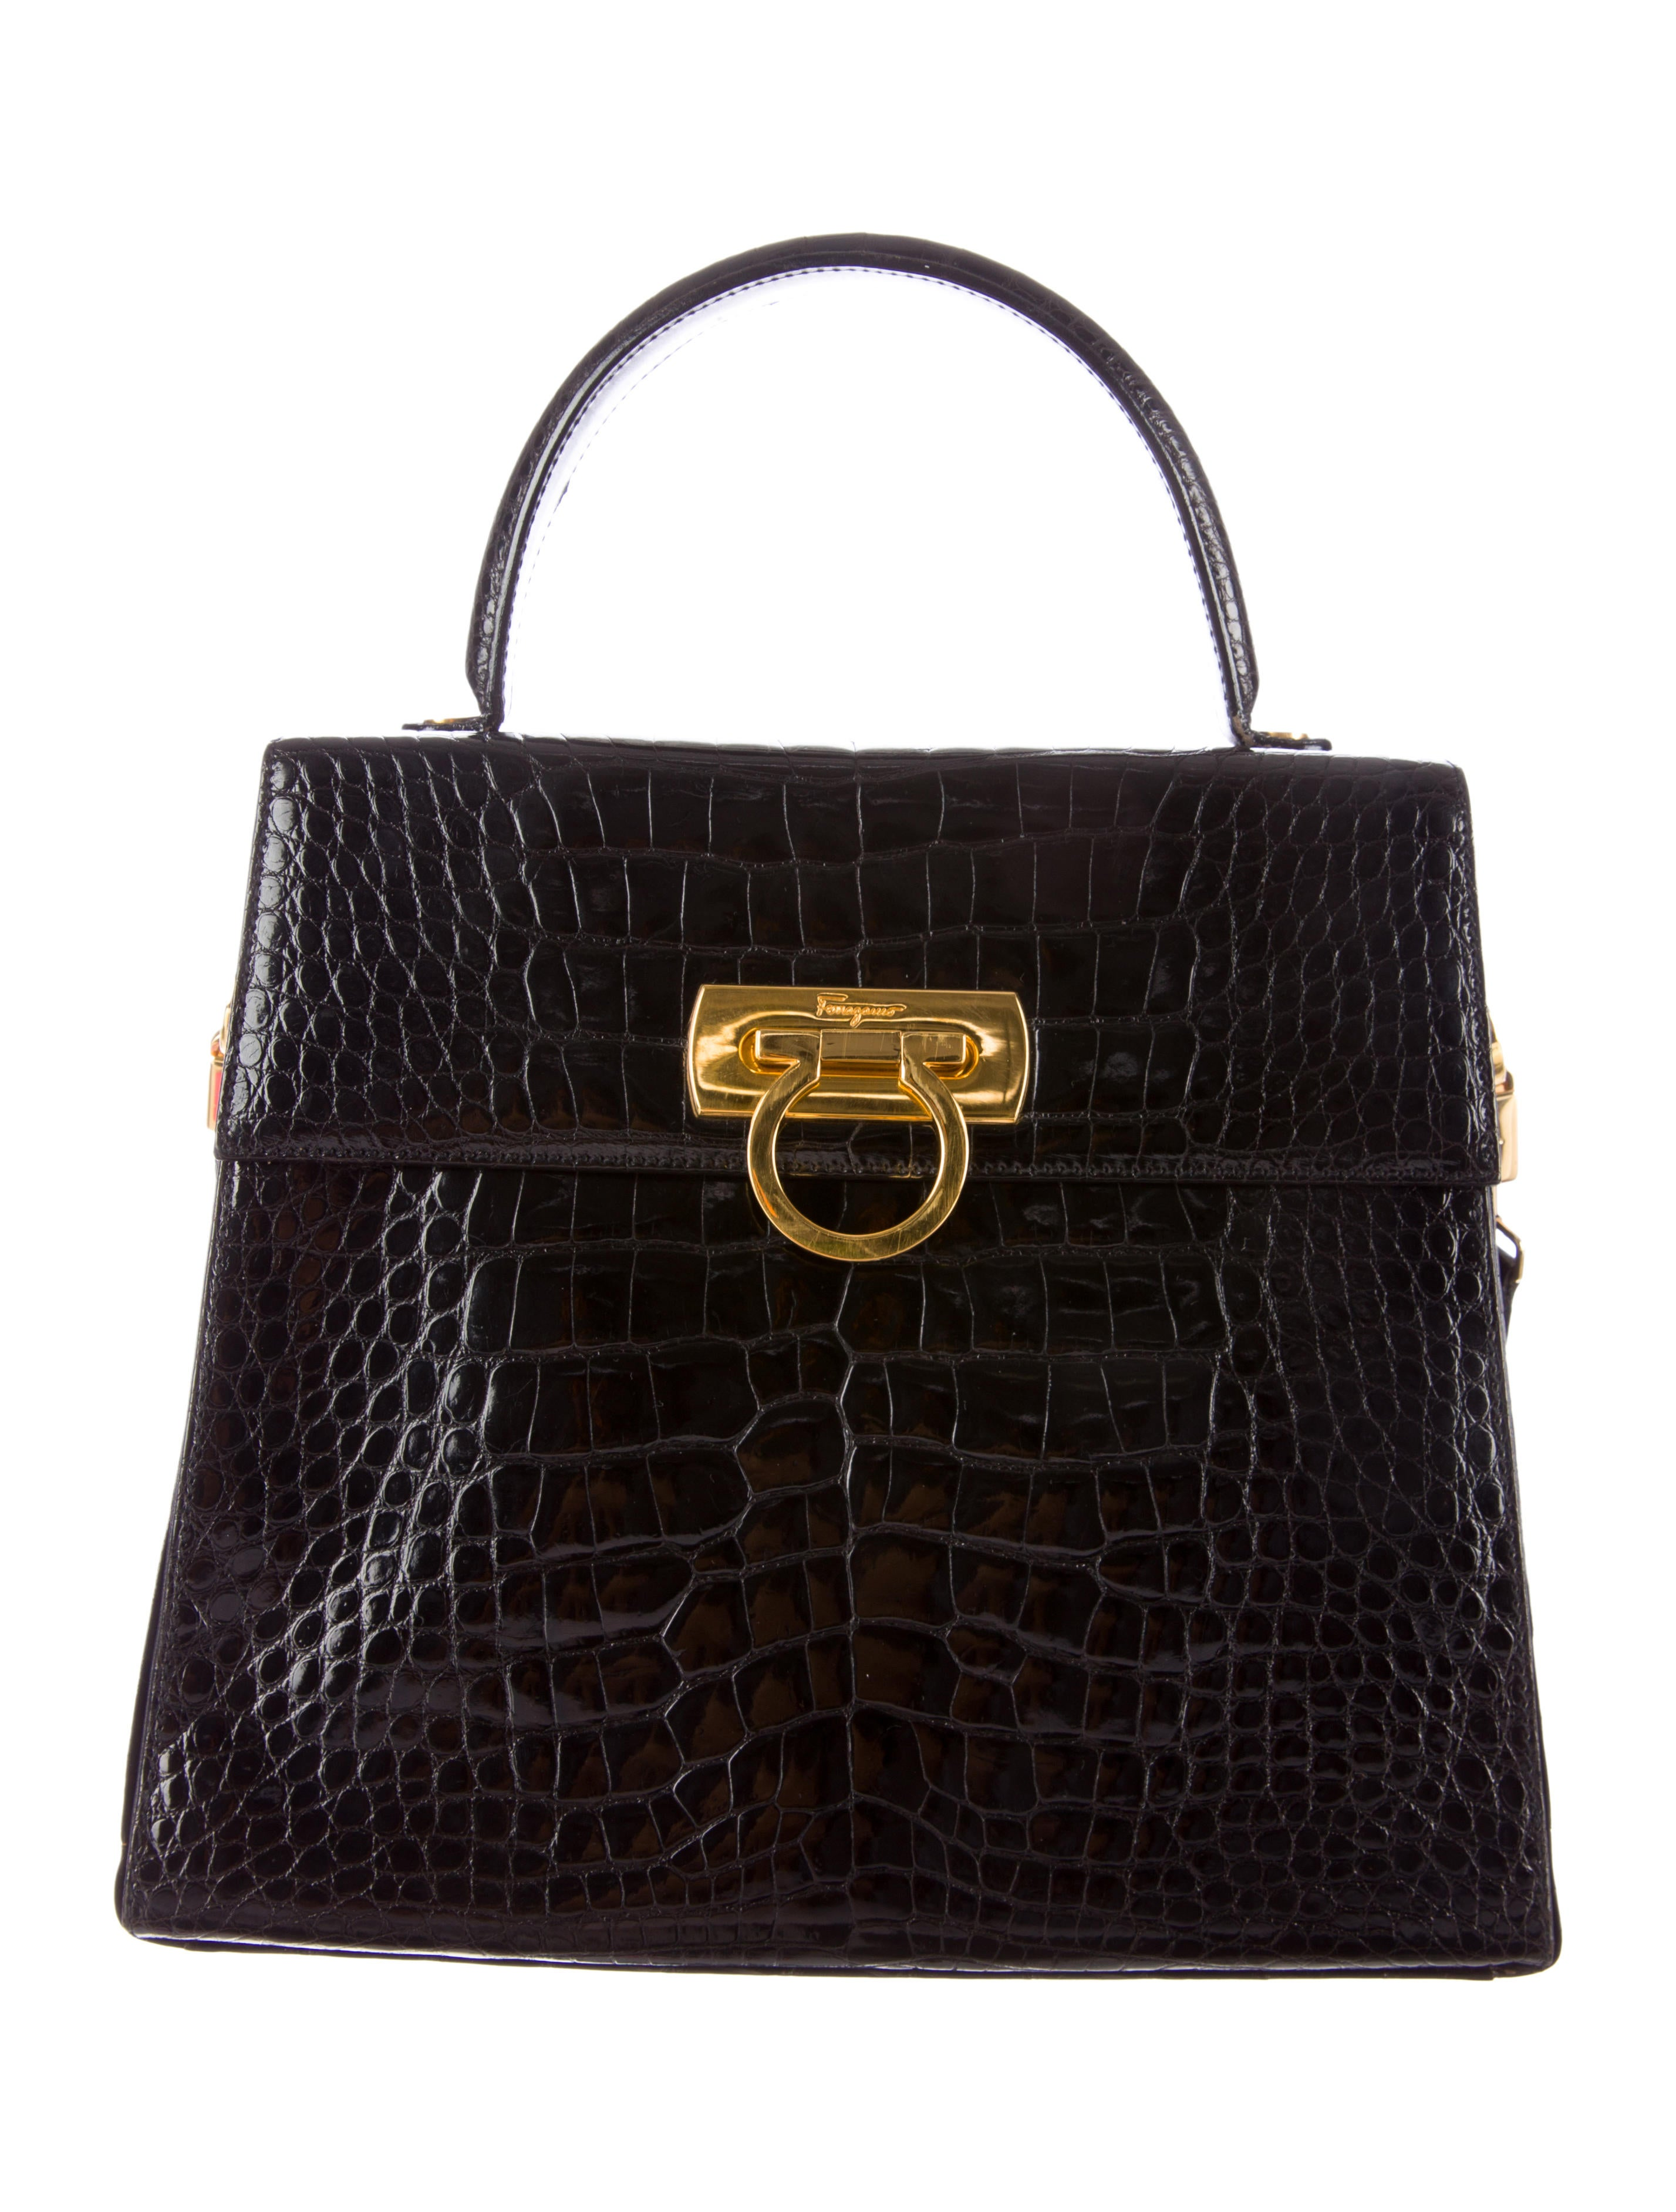 7e2c900c67 Salvatore Ferragamo Alligator Kelly Bag - Handbags - SAL24234